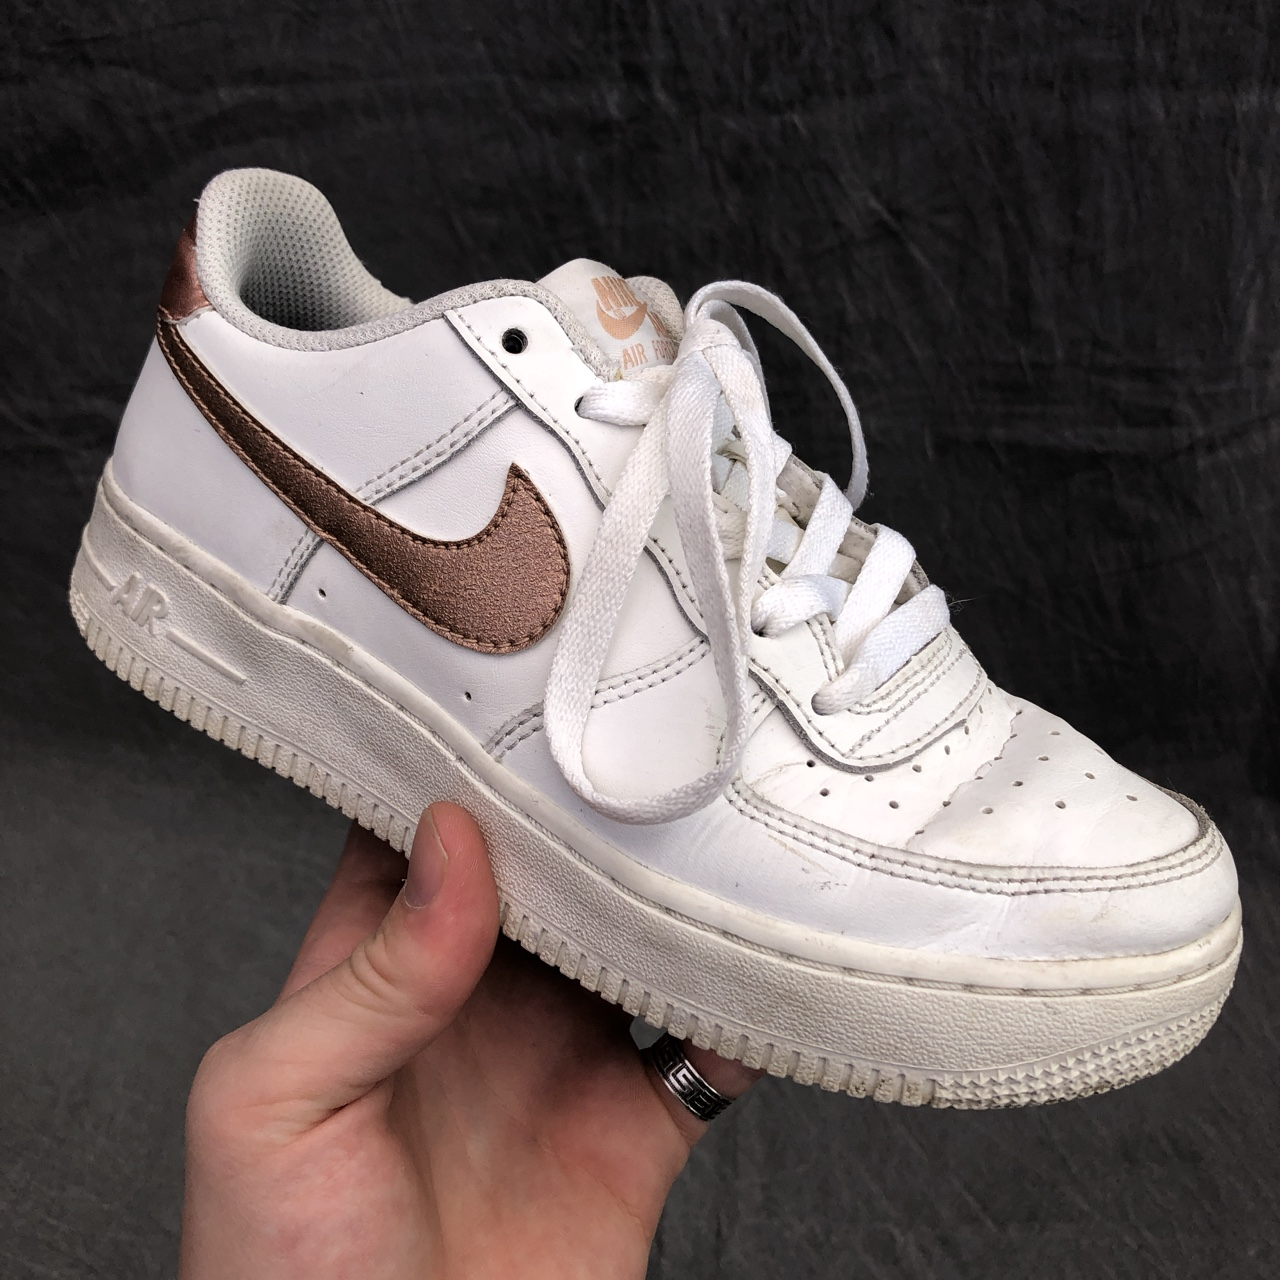 Nike Air Force 1 in white with shiny